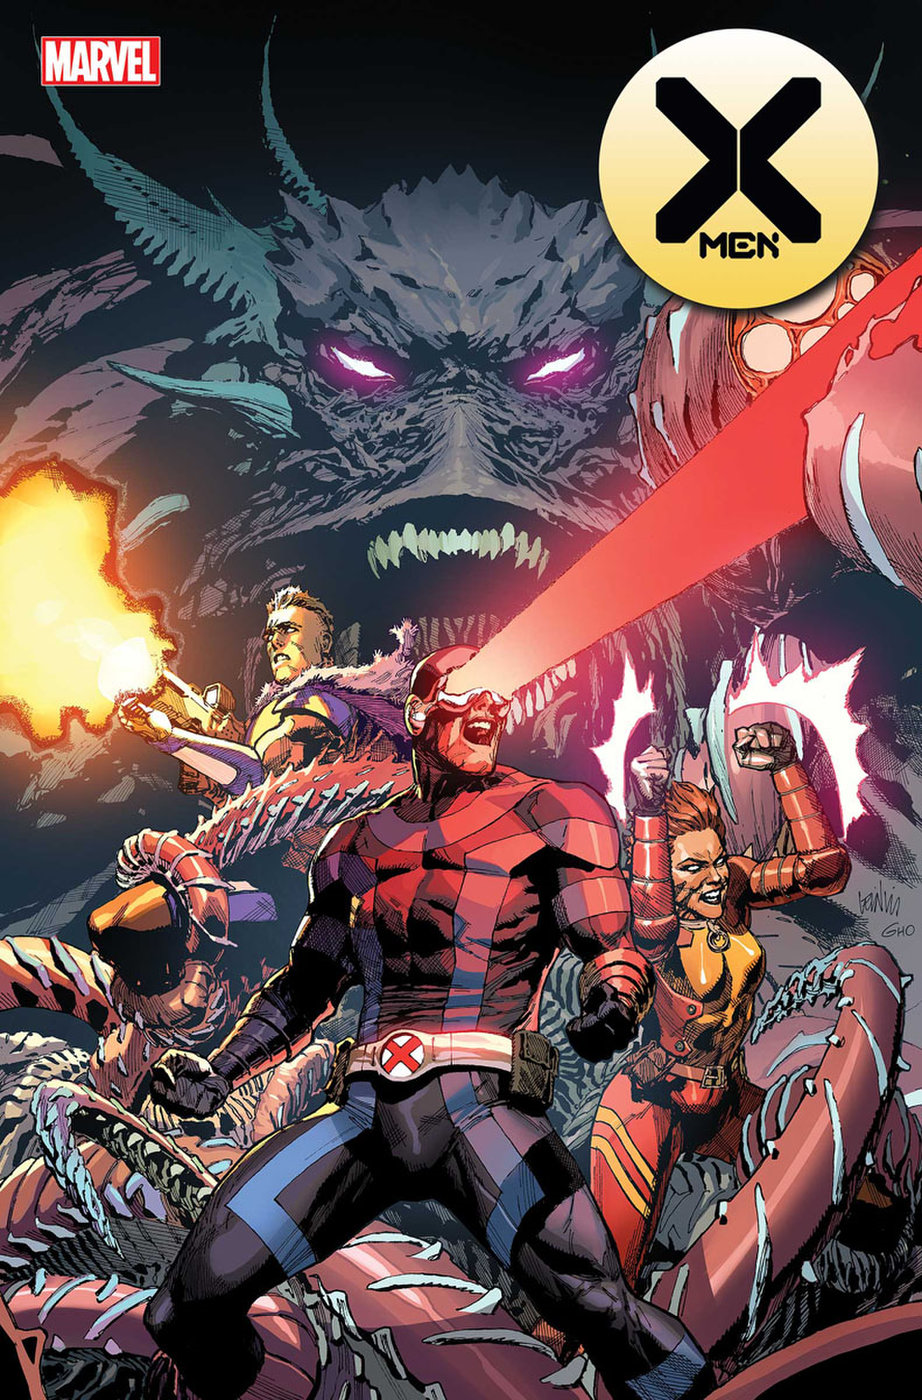 X Men 2 By Jonathan Hickman Leinil Francis Yu When An Island Full Of Unspeakable Horrors Appears On The Horiz Marvel Comics Covers Marvel Comics Funny Marvel